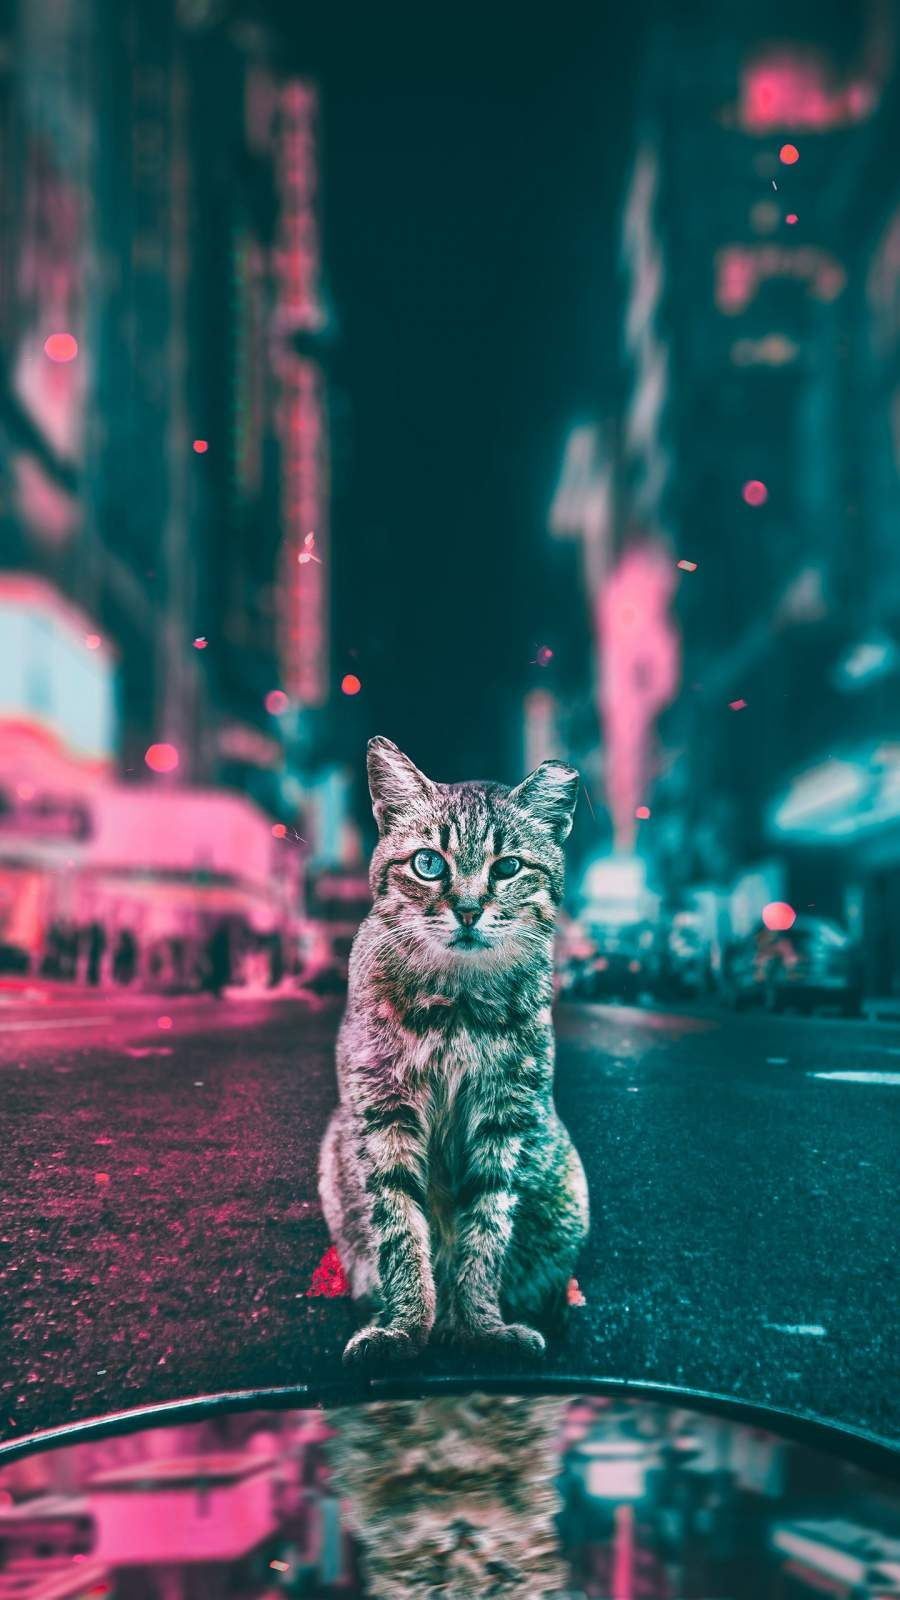 Cat In The City Iphone Wallpaper Fond D Ecran Chat Animaux